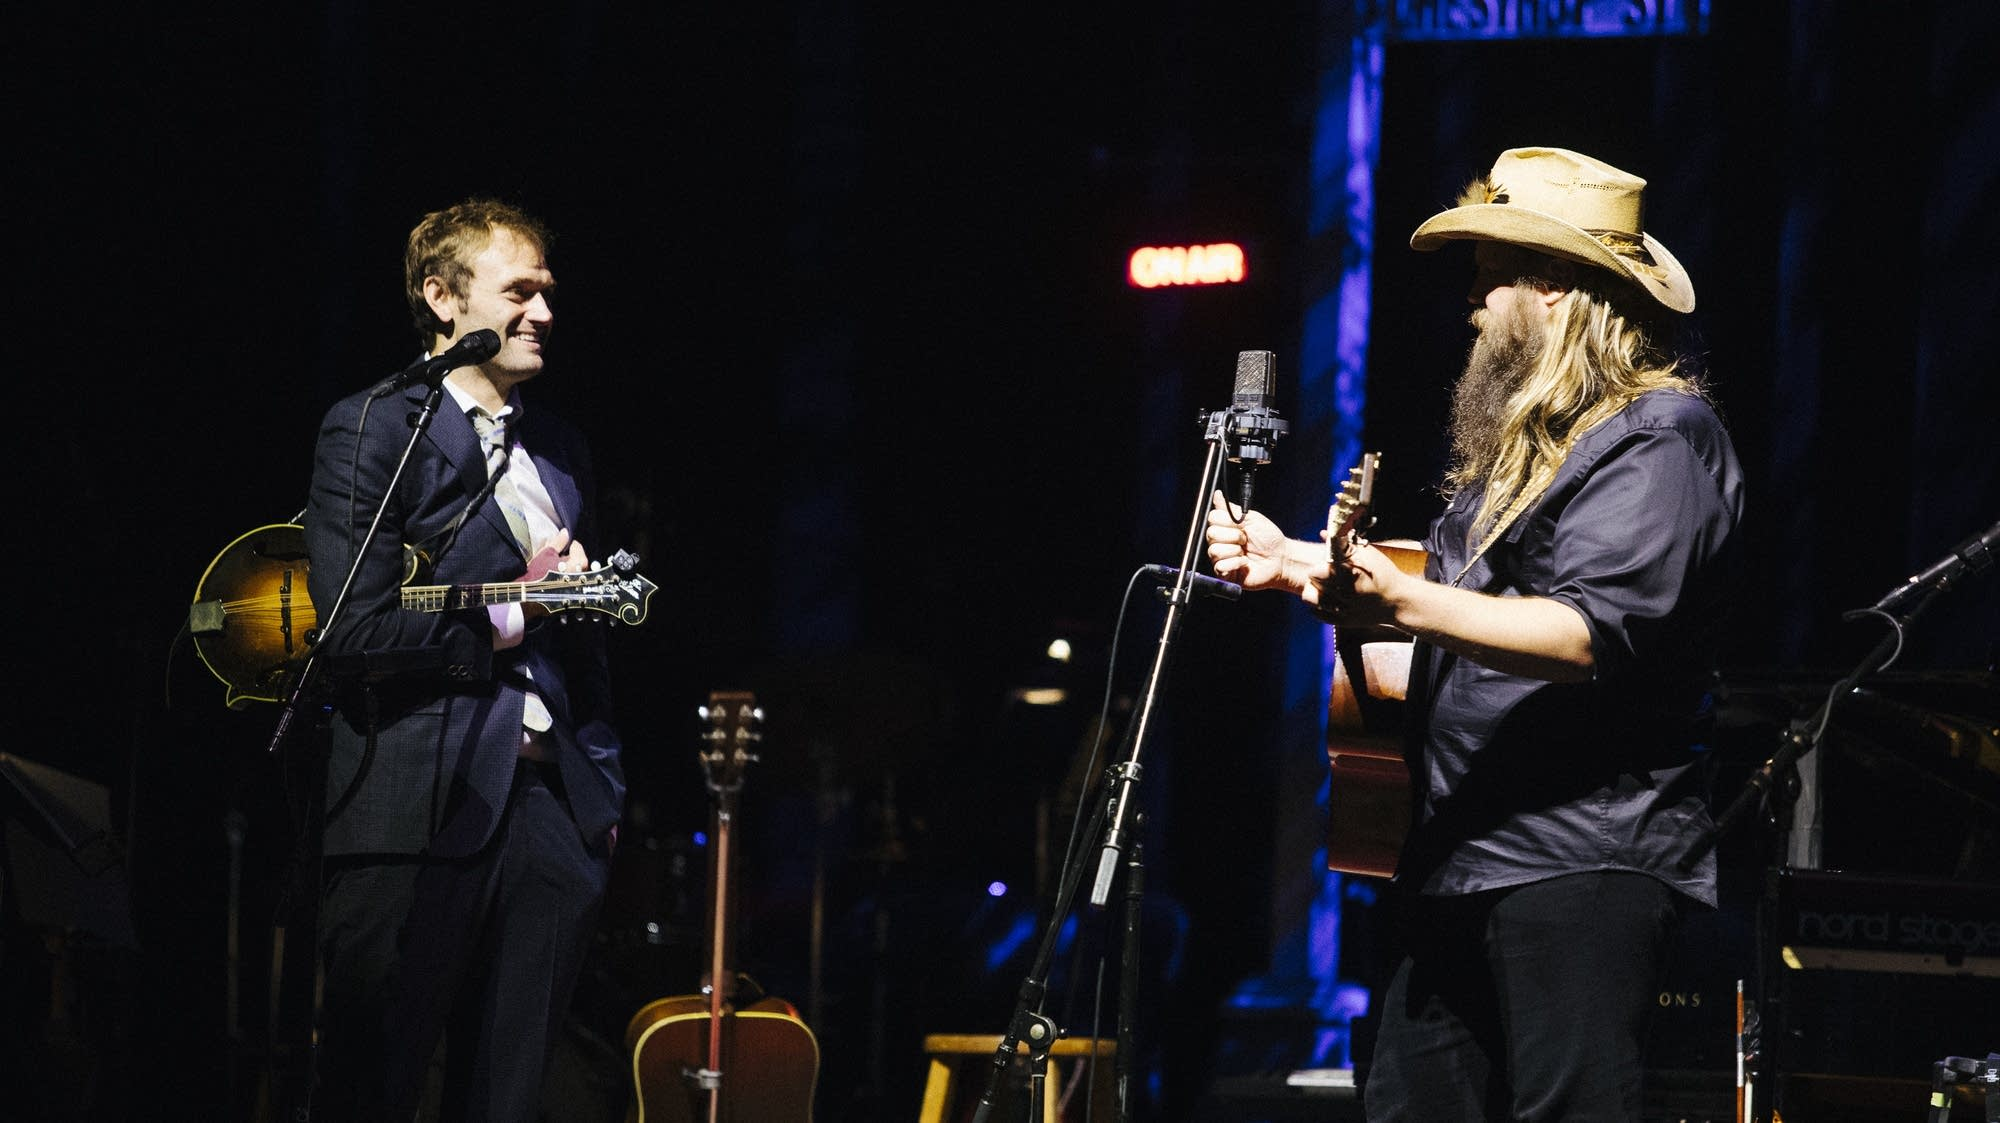 Chris Thile talks with Chris Stapleton